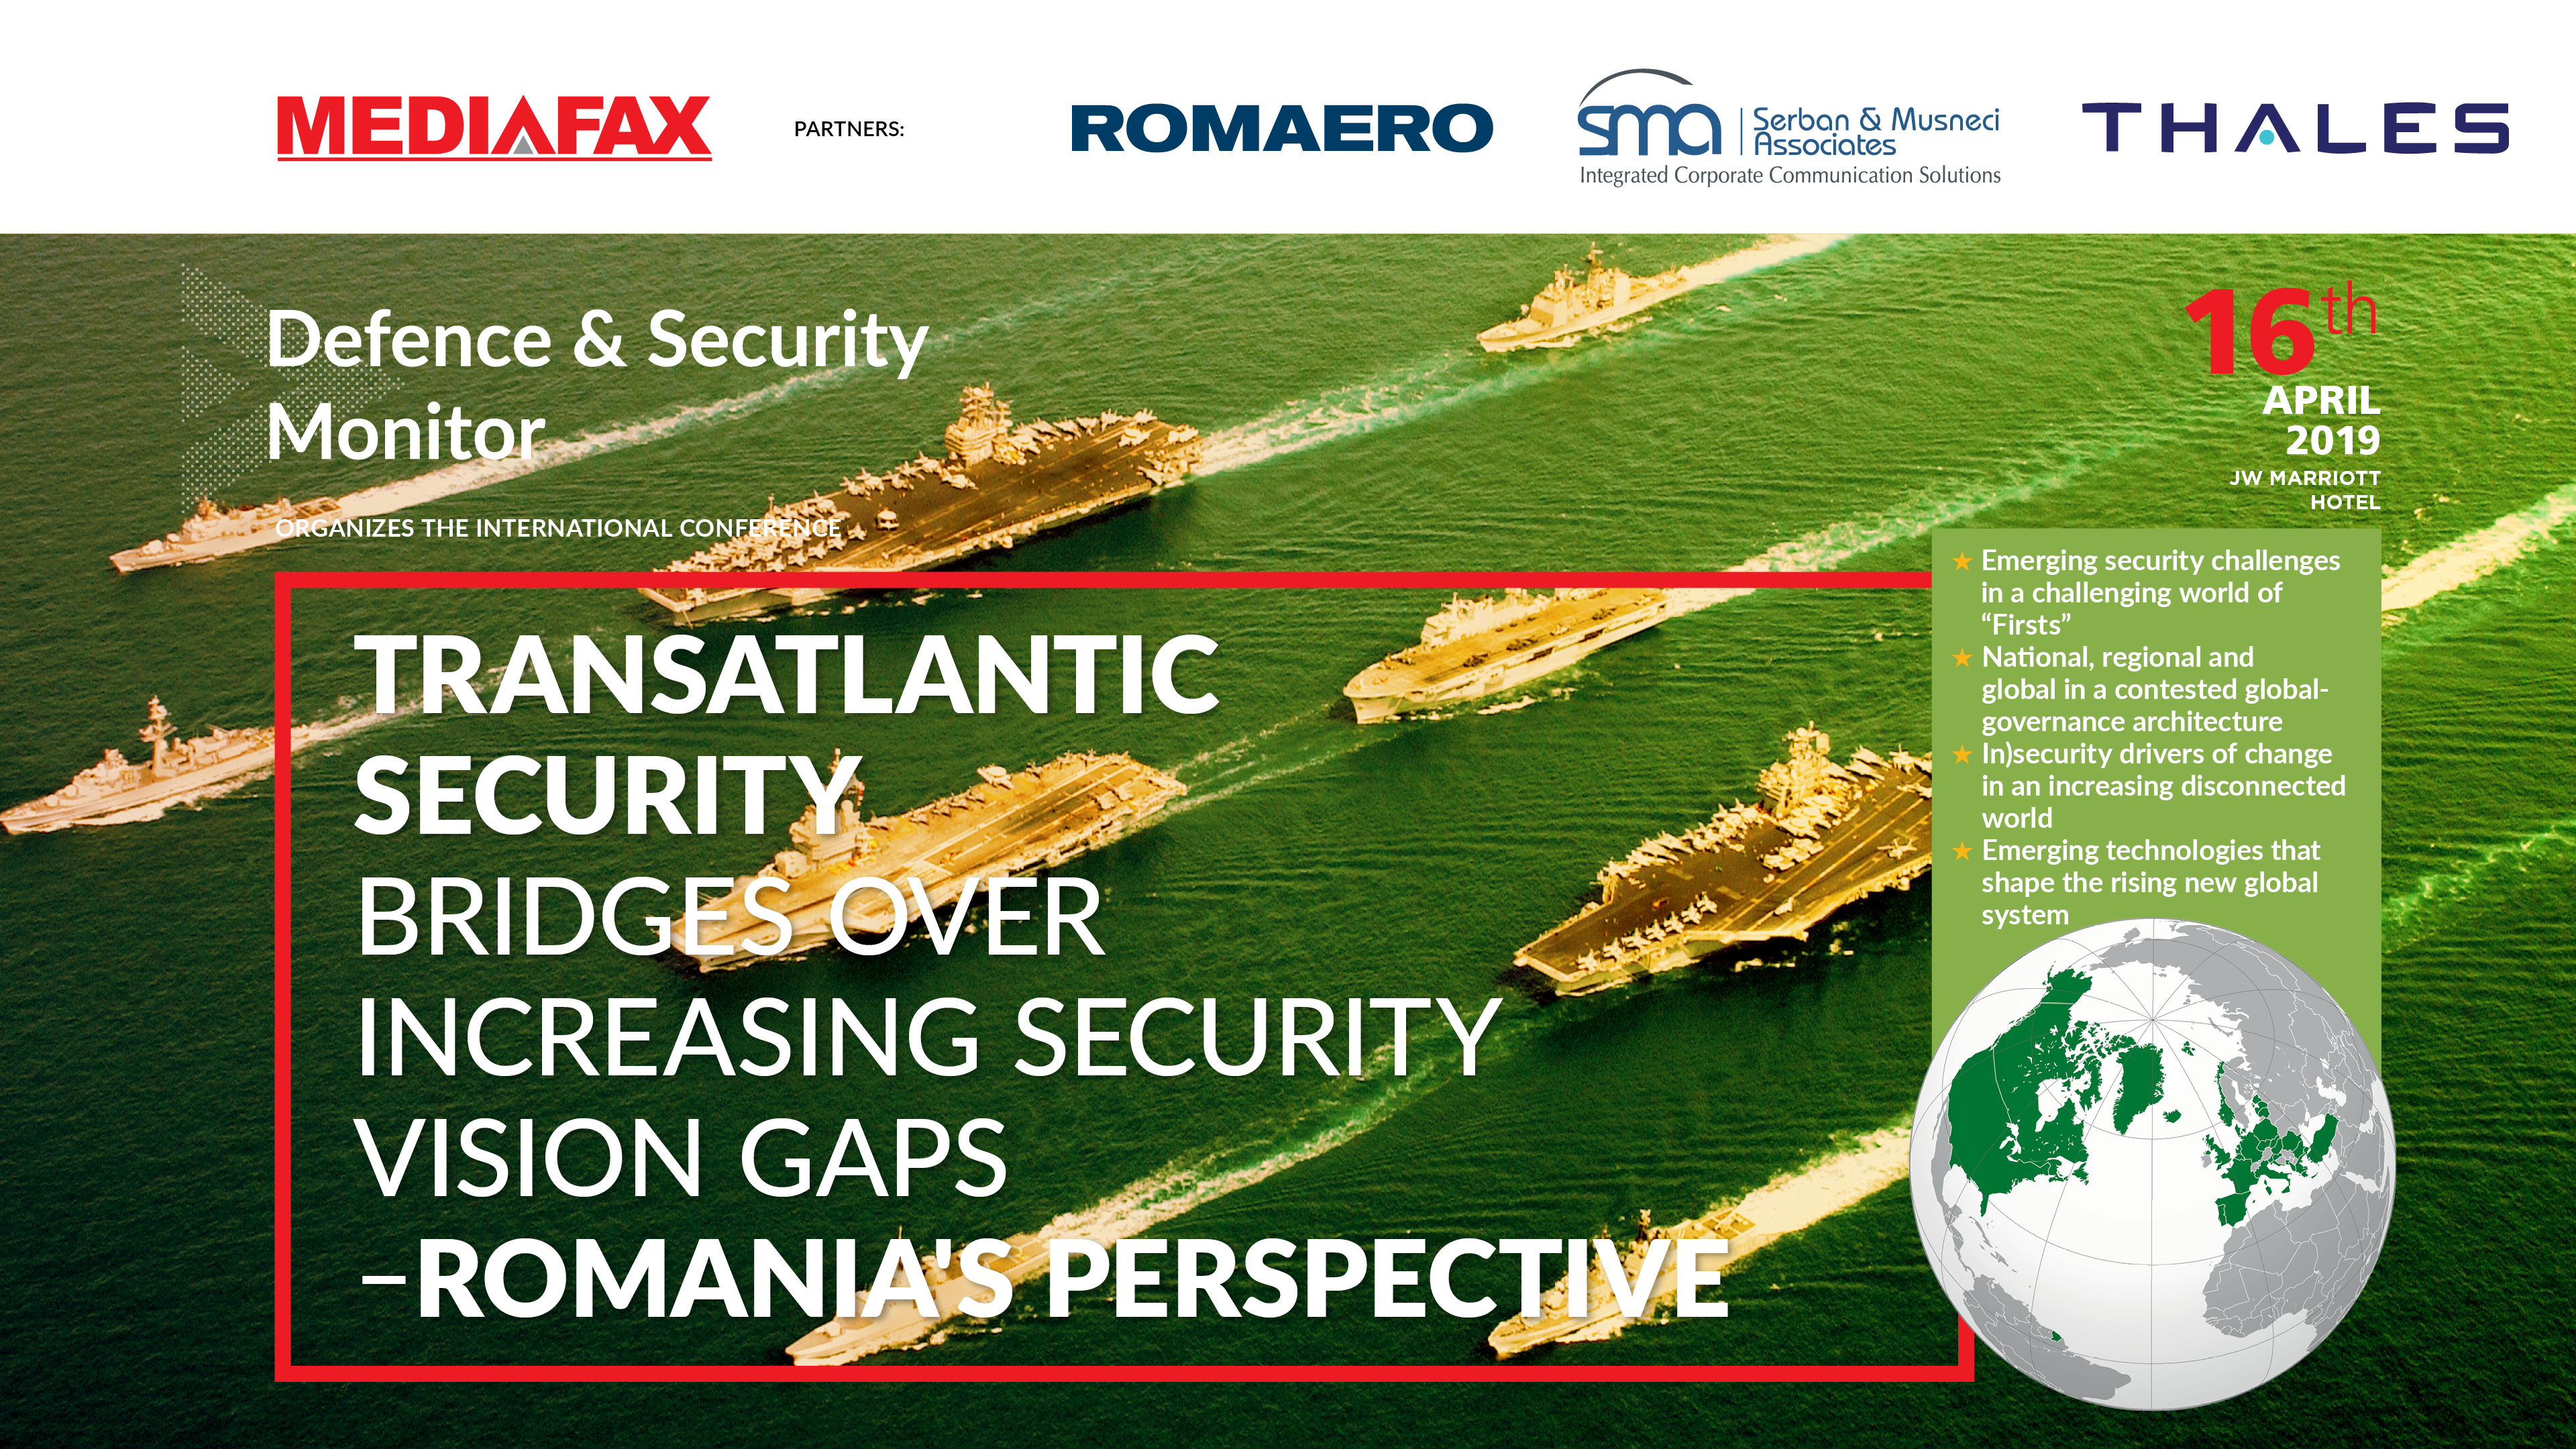 Transatlantic Security Bridges Over Increasing Security Vision Gaps - Romania's Perspective